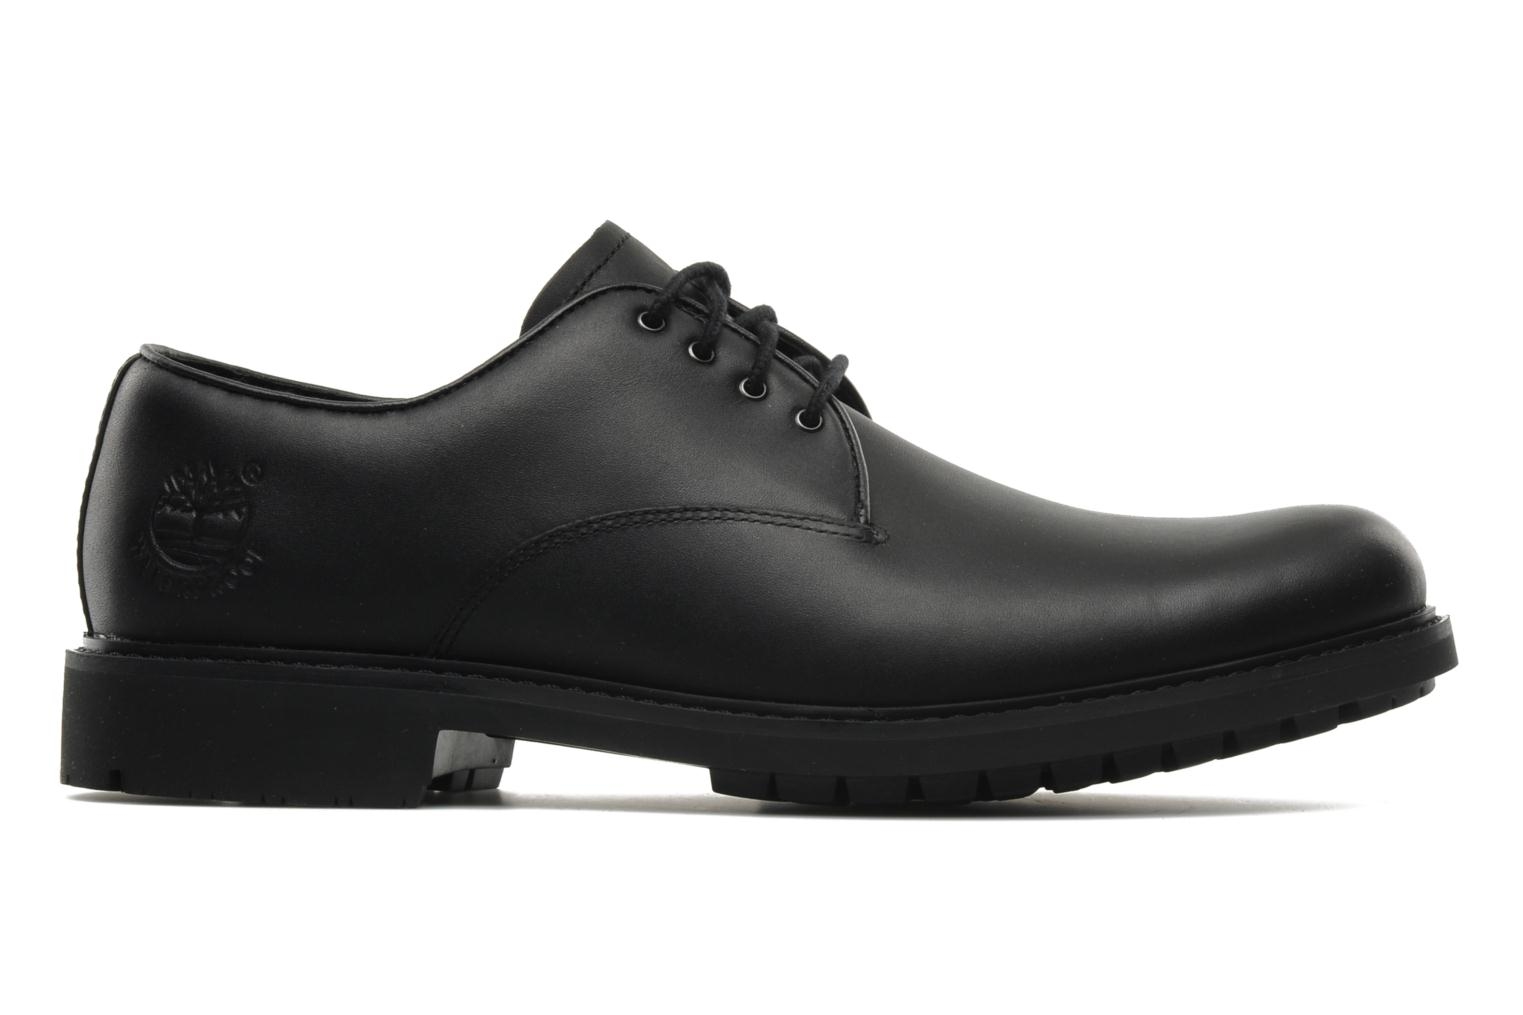 Chaussures à lacets Timberland Earthkeepers Stormbuck Plain Toe Oxford Noir vue derrière